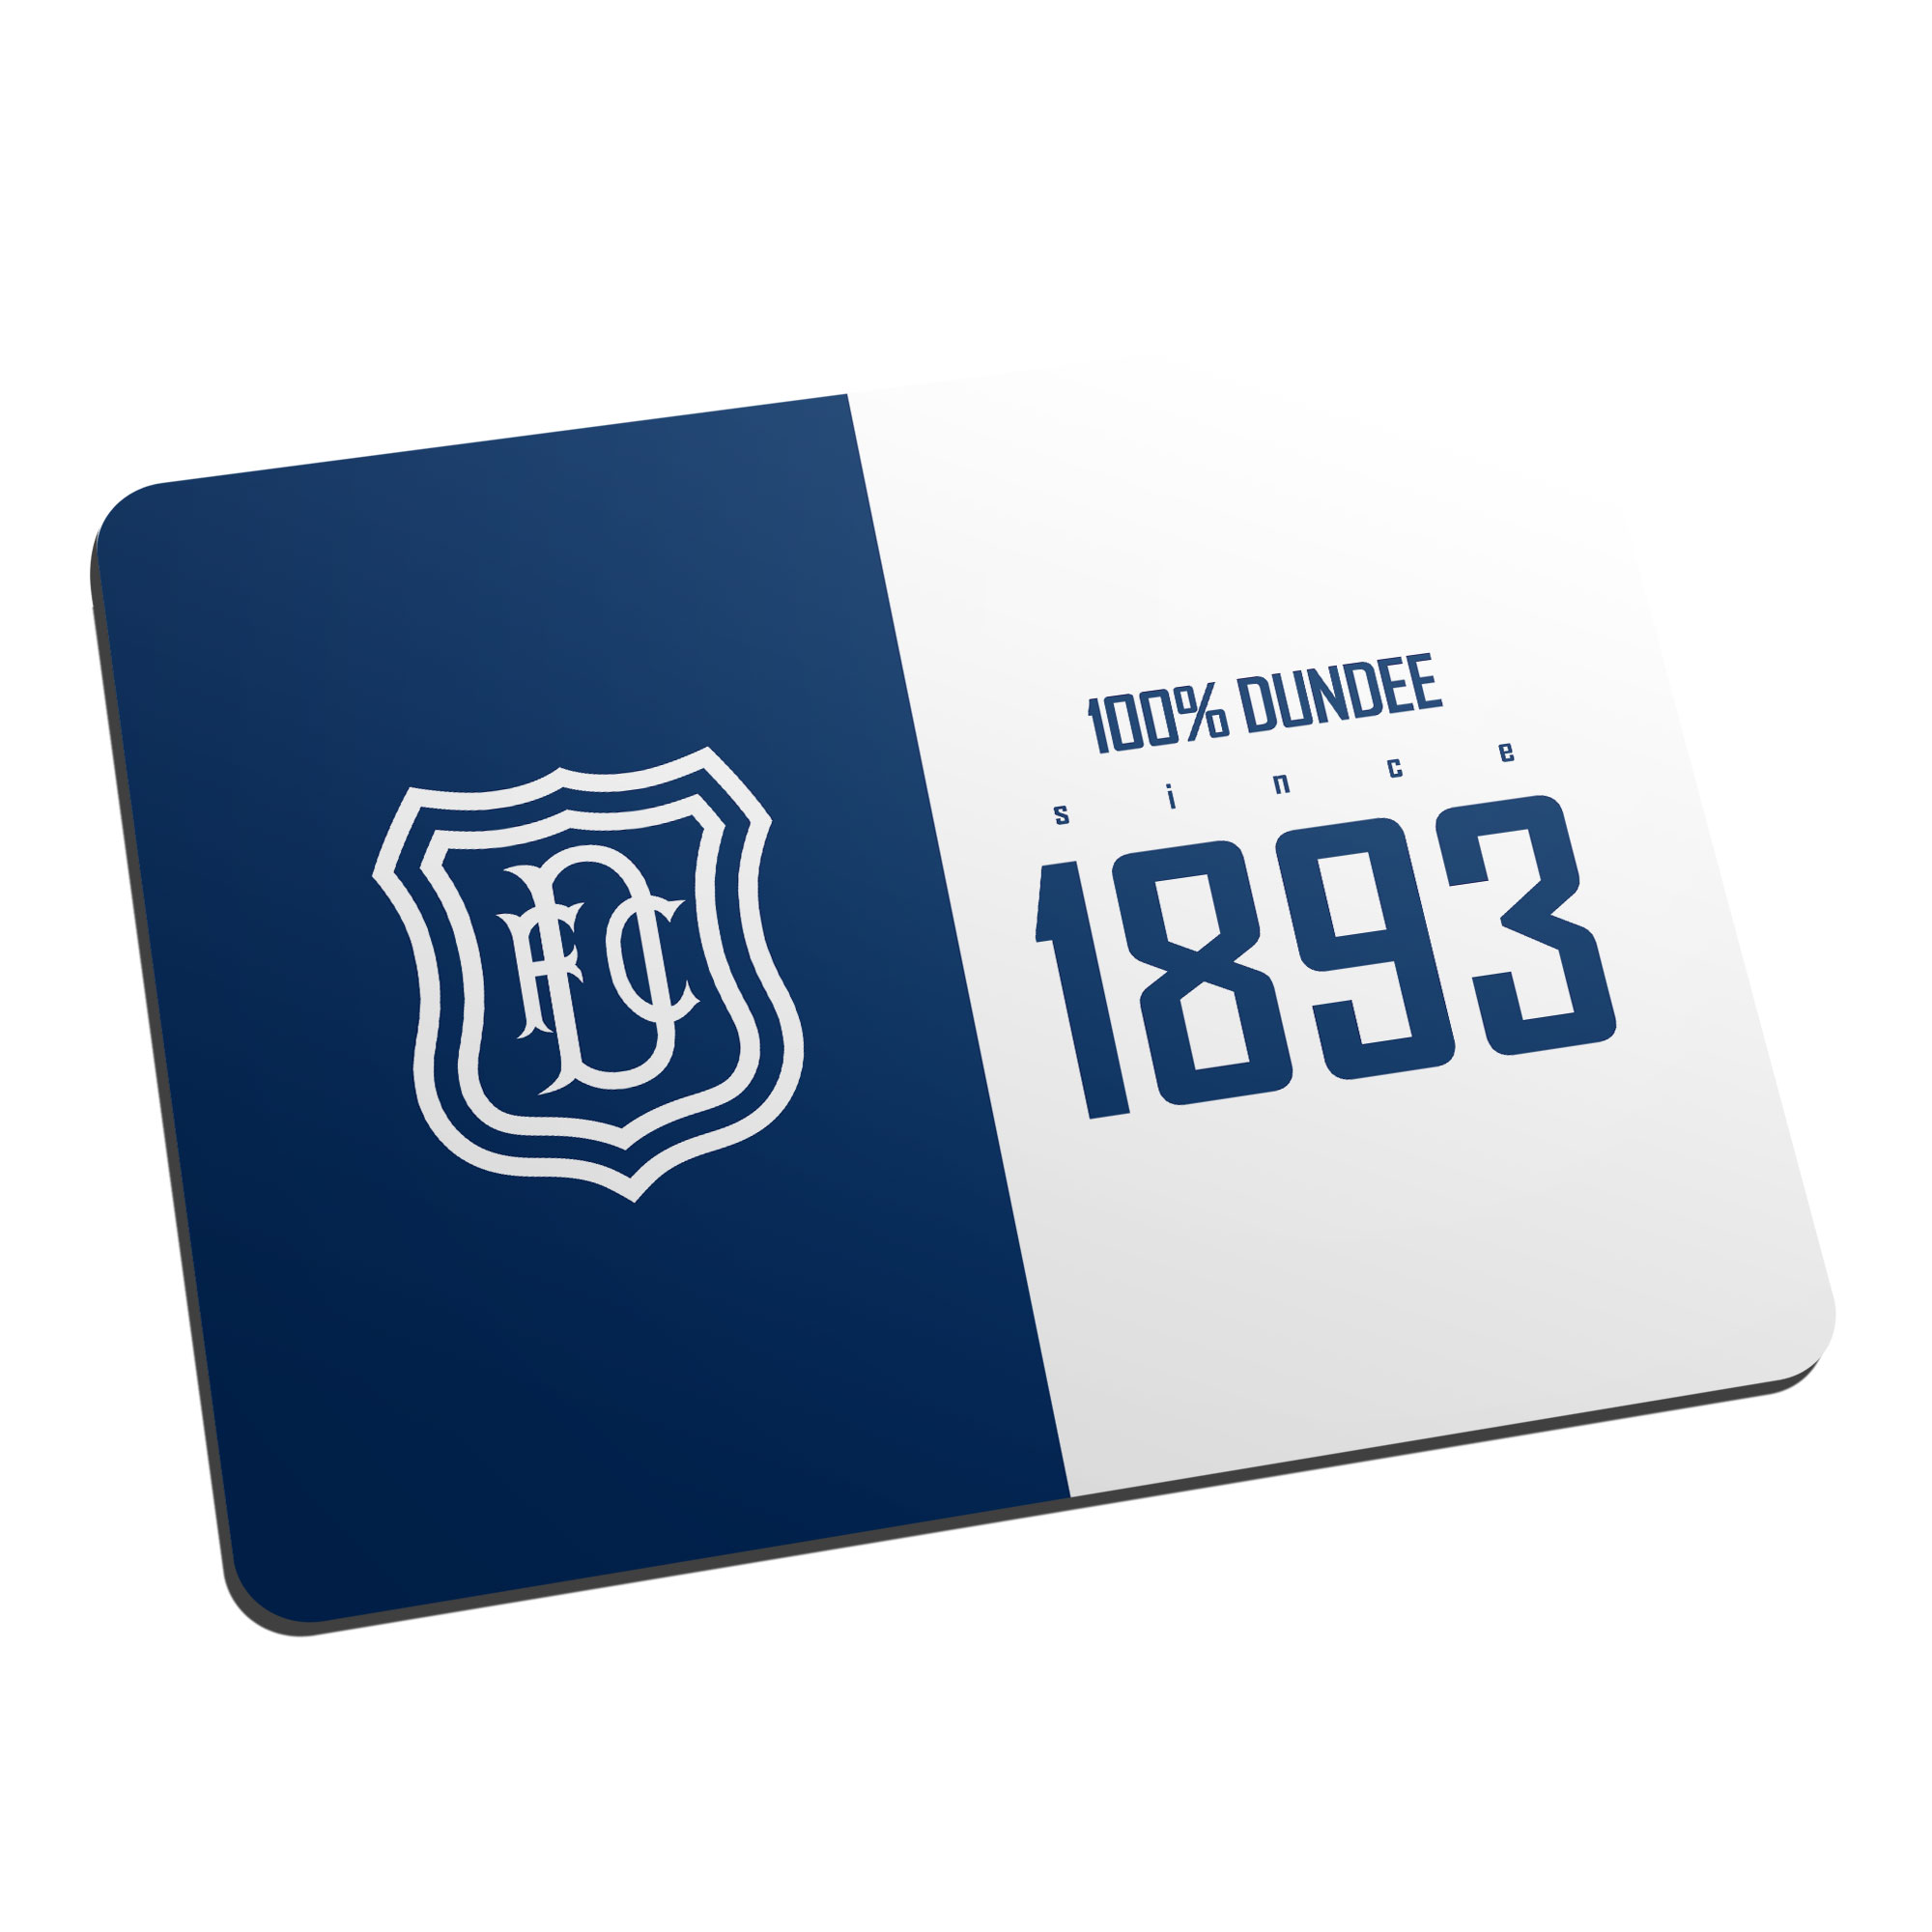 Dundee FC 100 Percent Mouse Mat